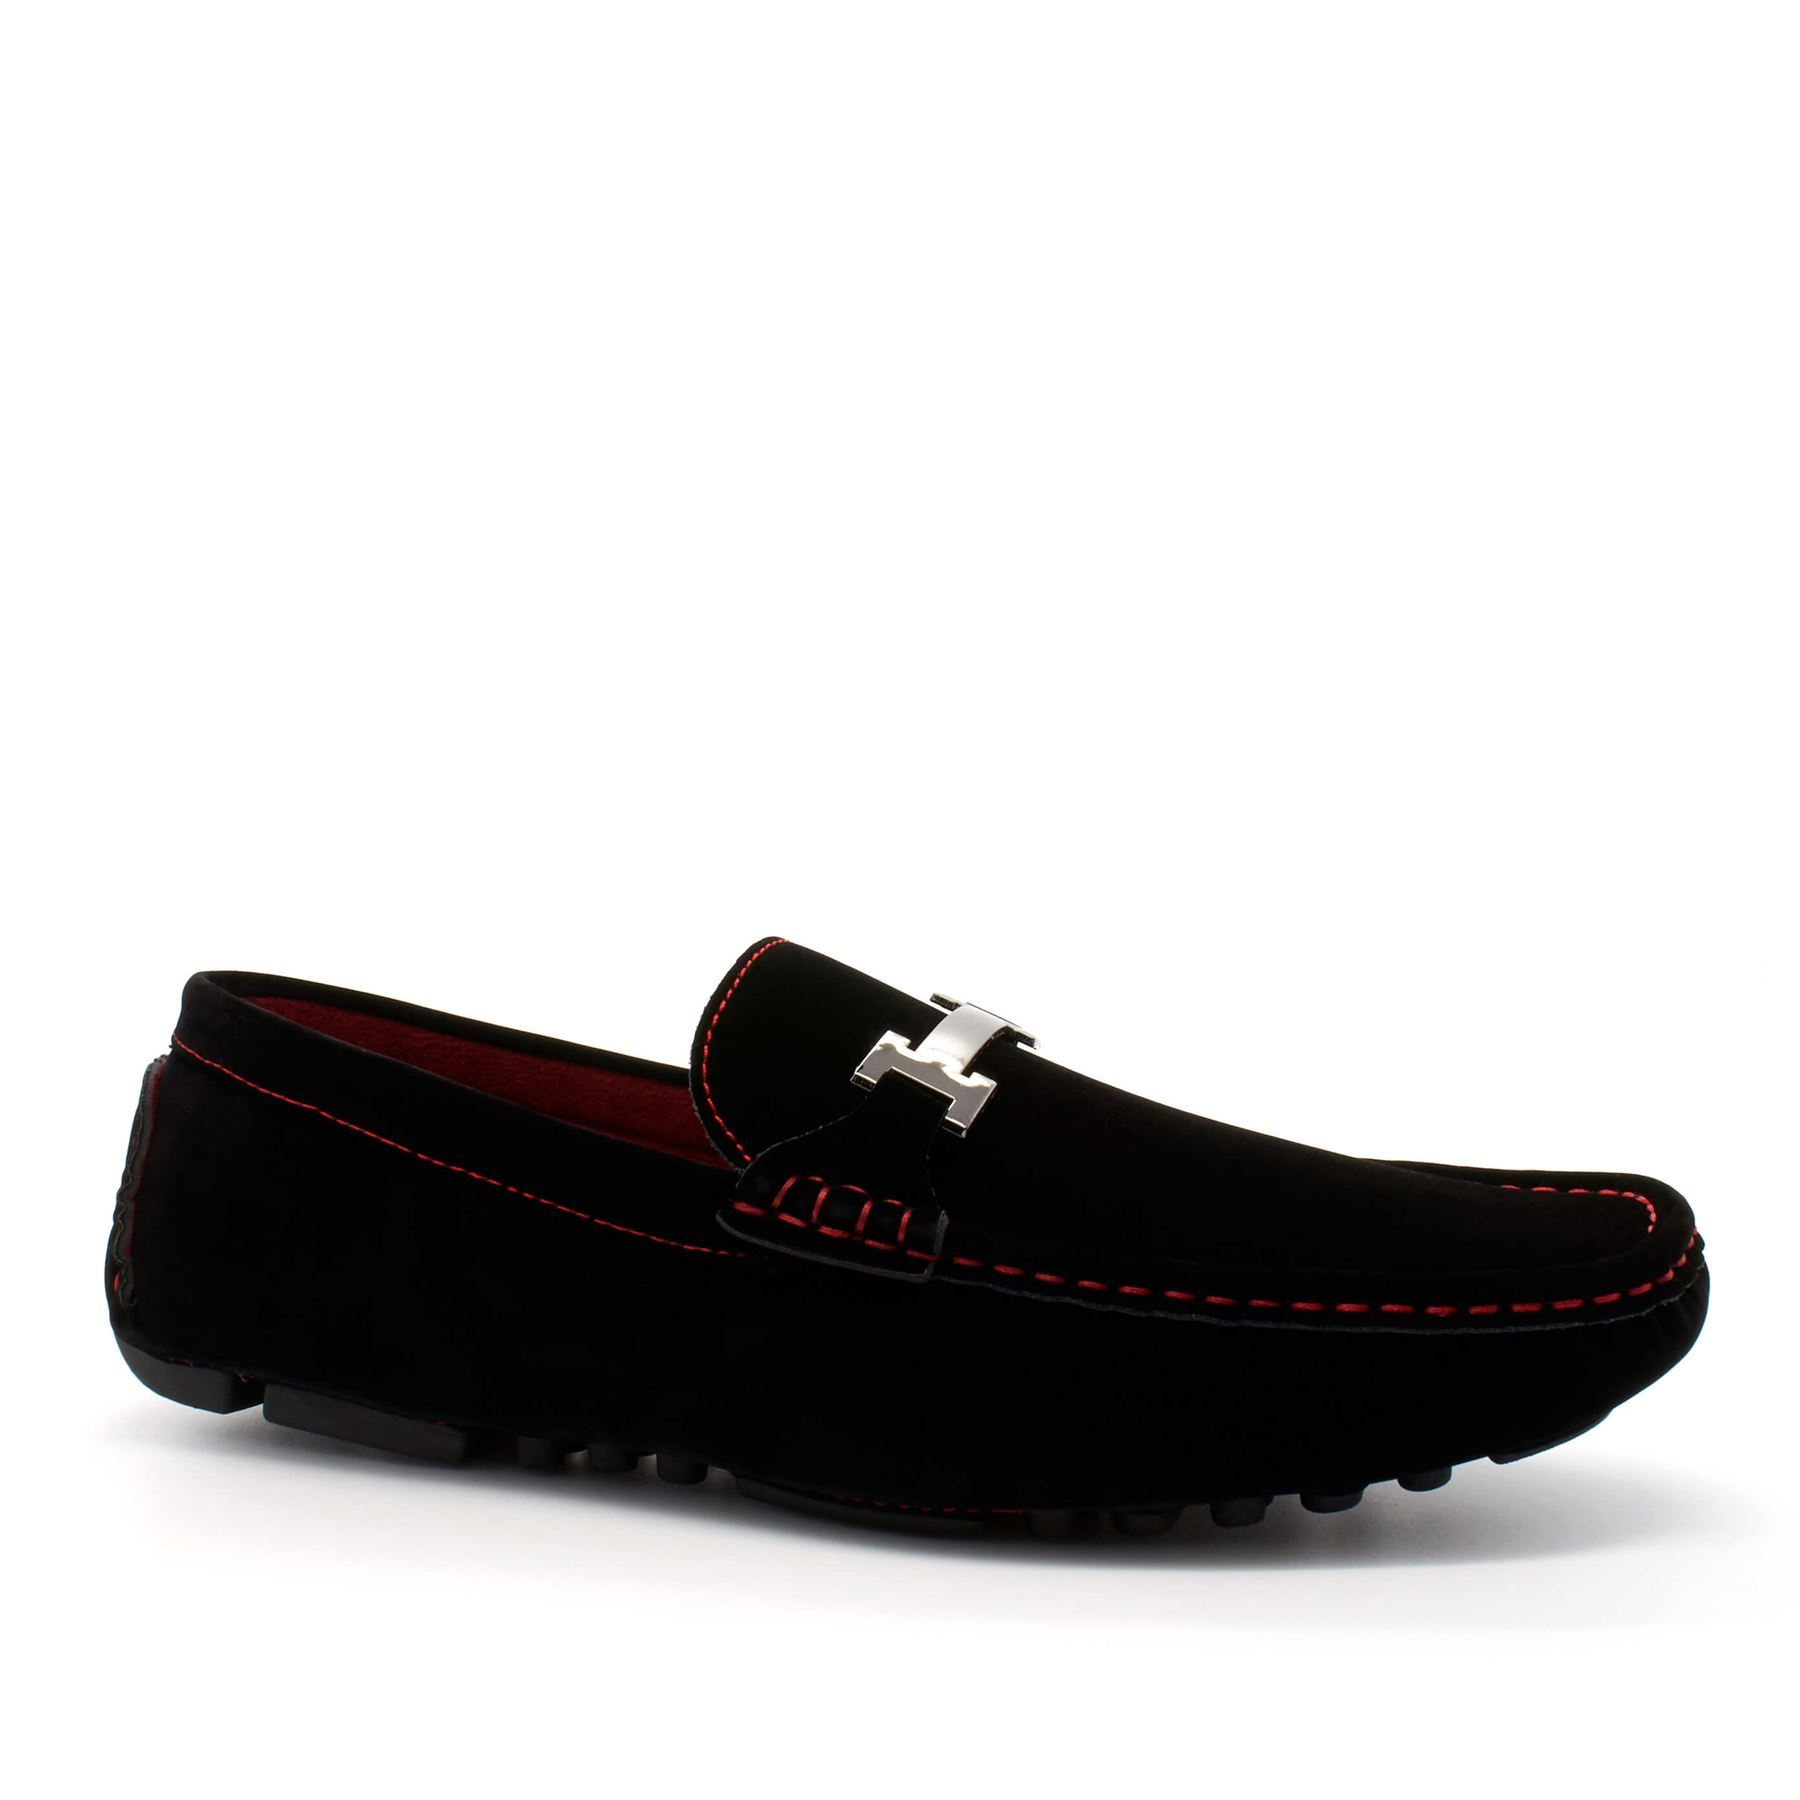 Men's Casual Loafer Slip On Driving Shoes